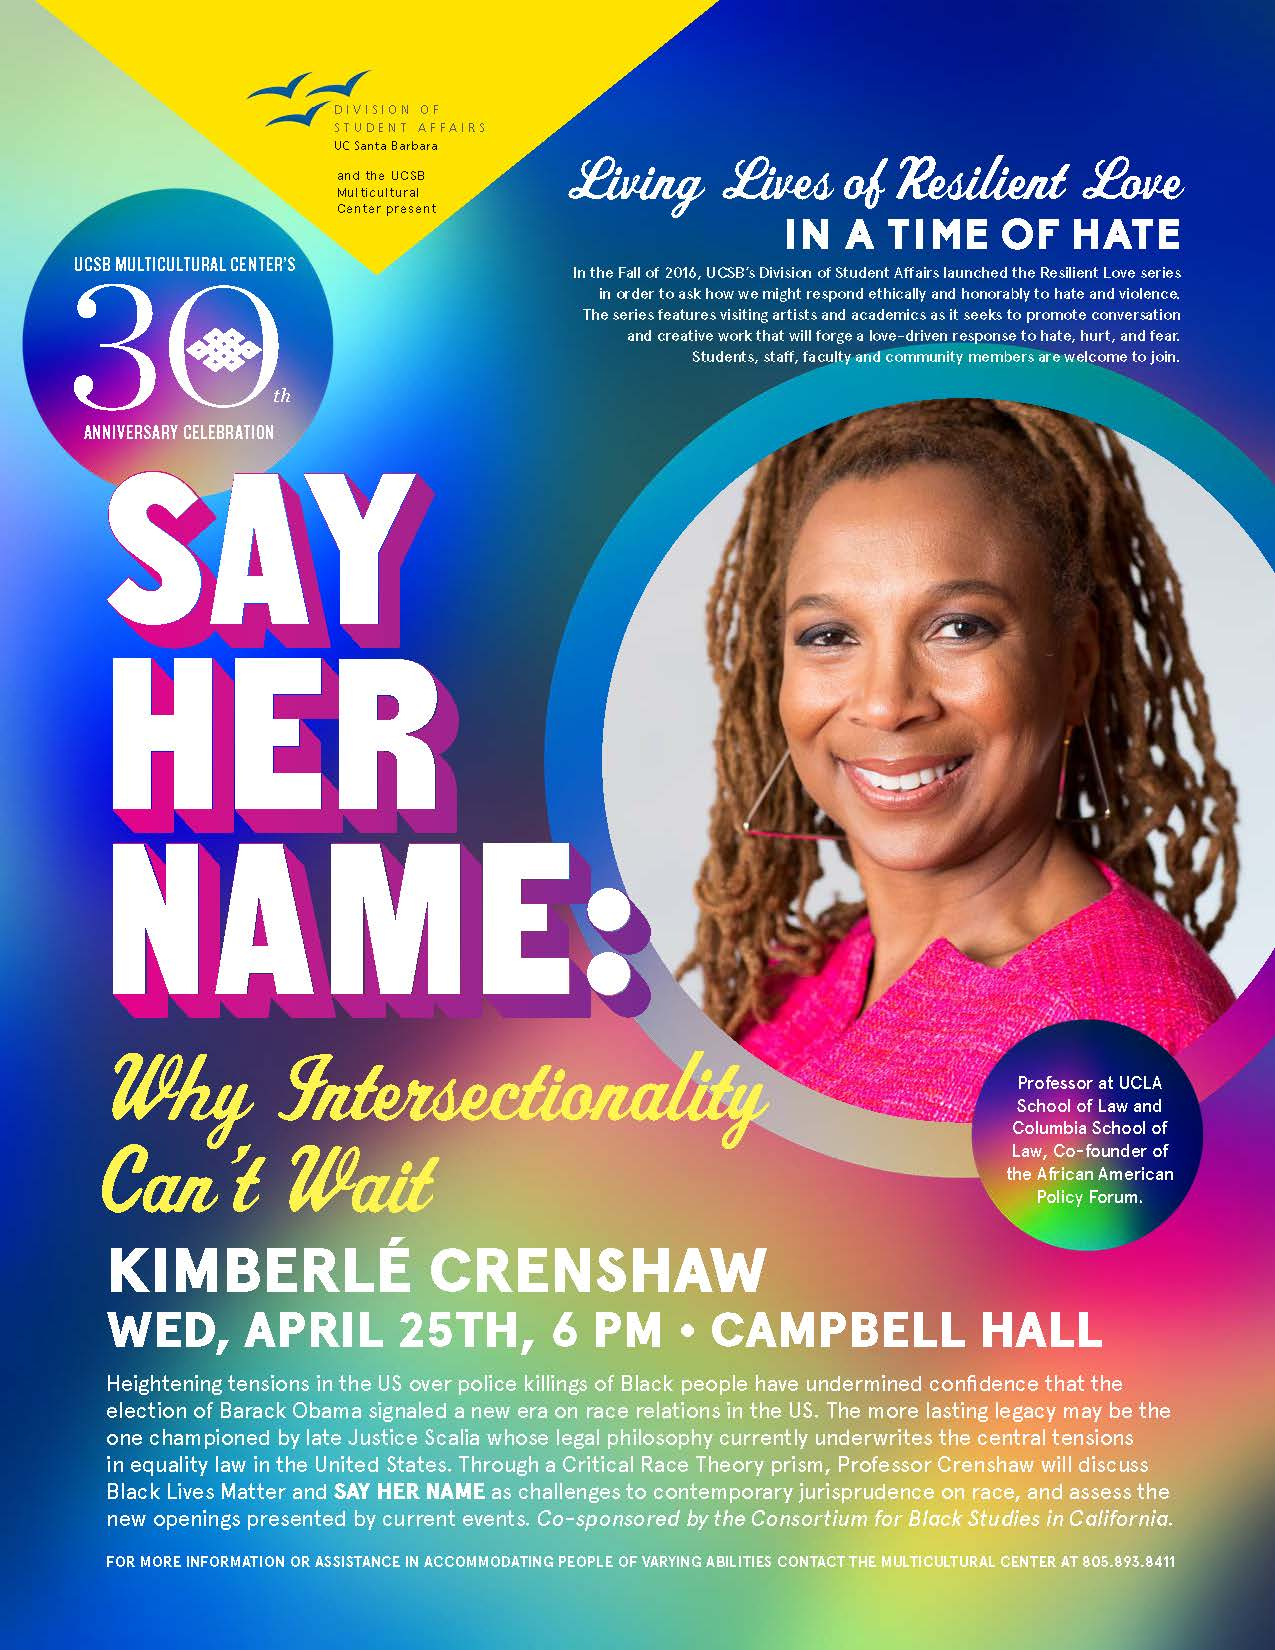 Why Intersectionality Can't Wait - Kimberlé Crenshaw